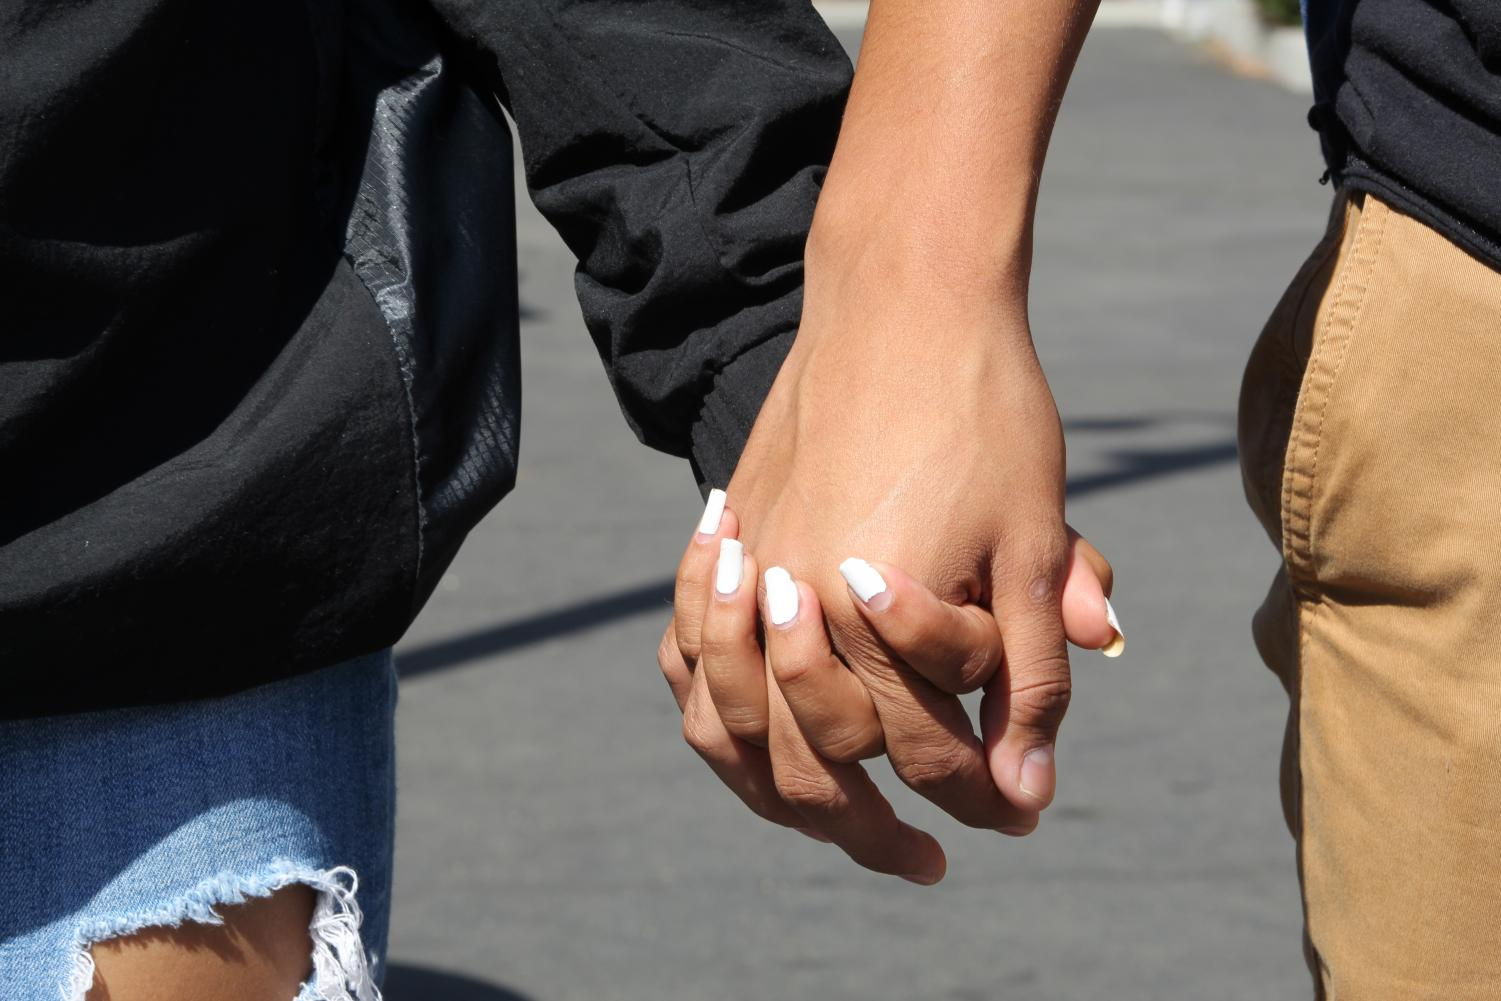 Many+couples+at+MCHS+show+their+love+for+each+other+through+holding+hands.